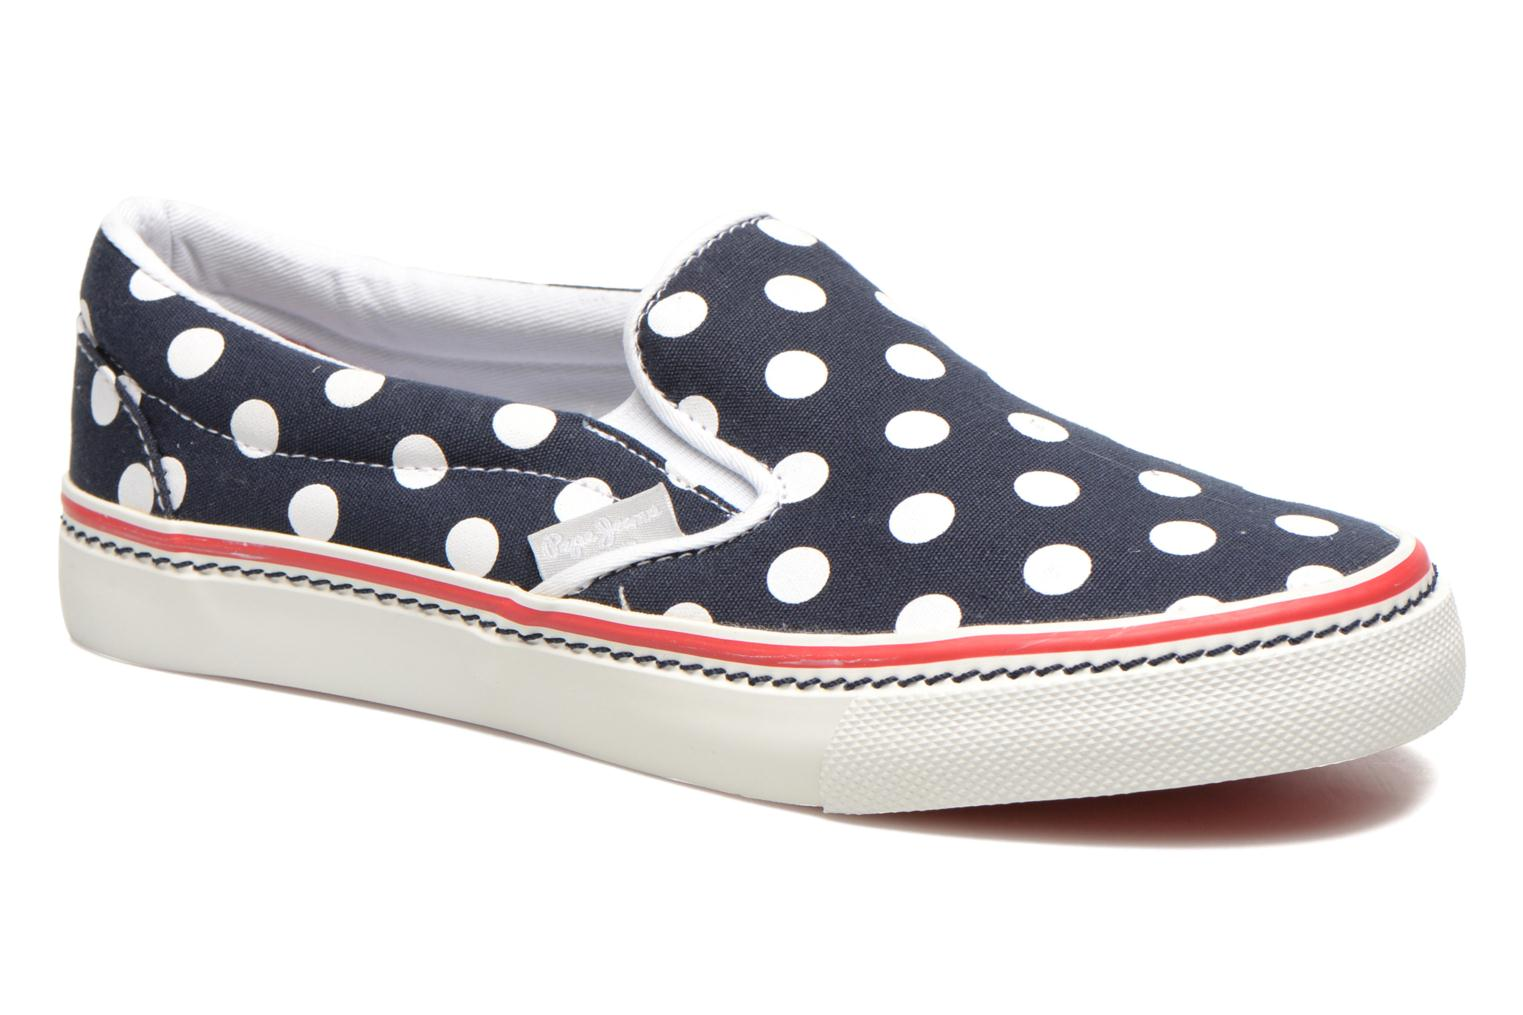 Sneakers Alford Hawai by Pepe jeans